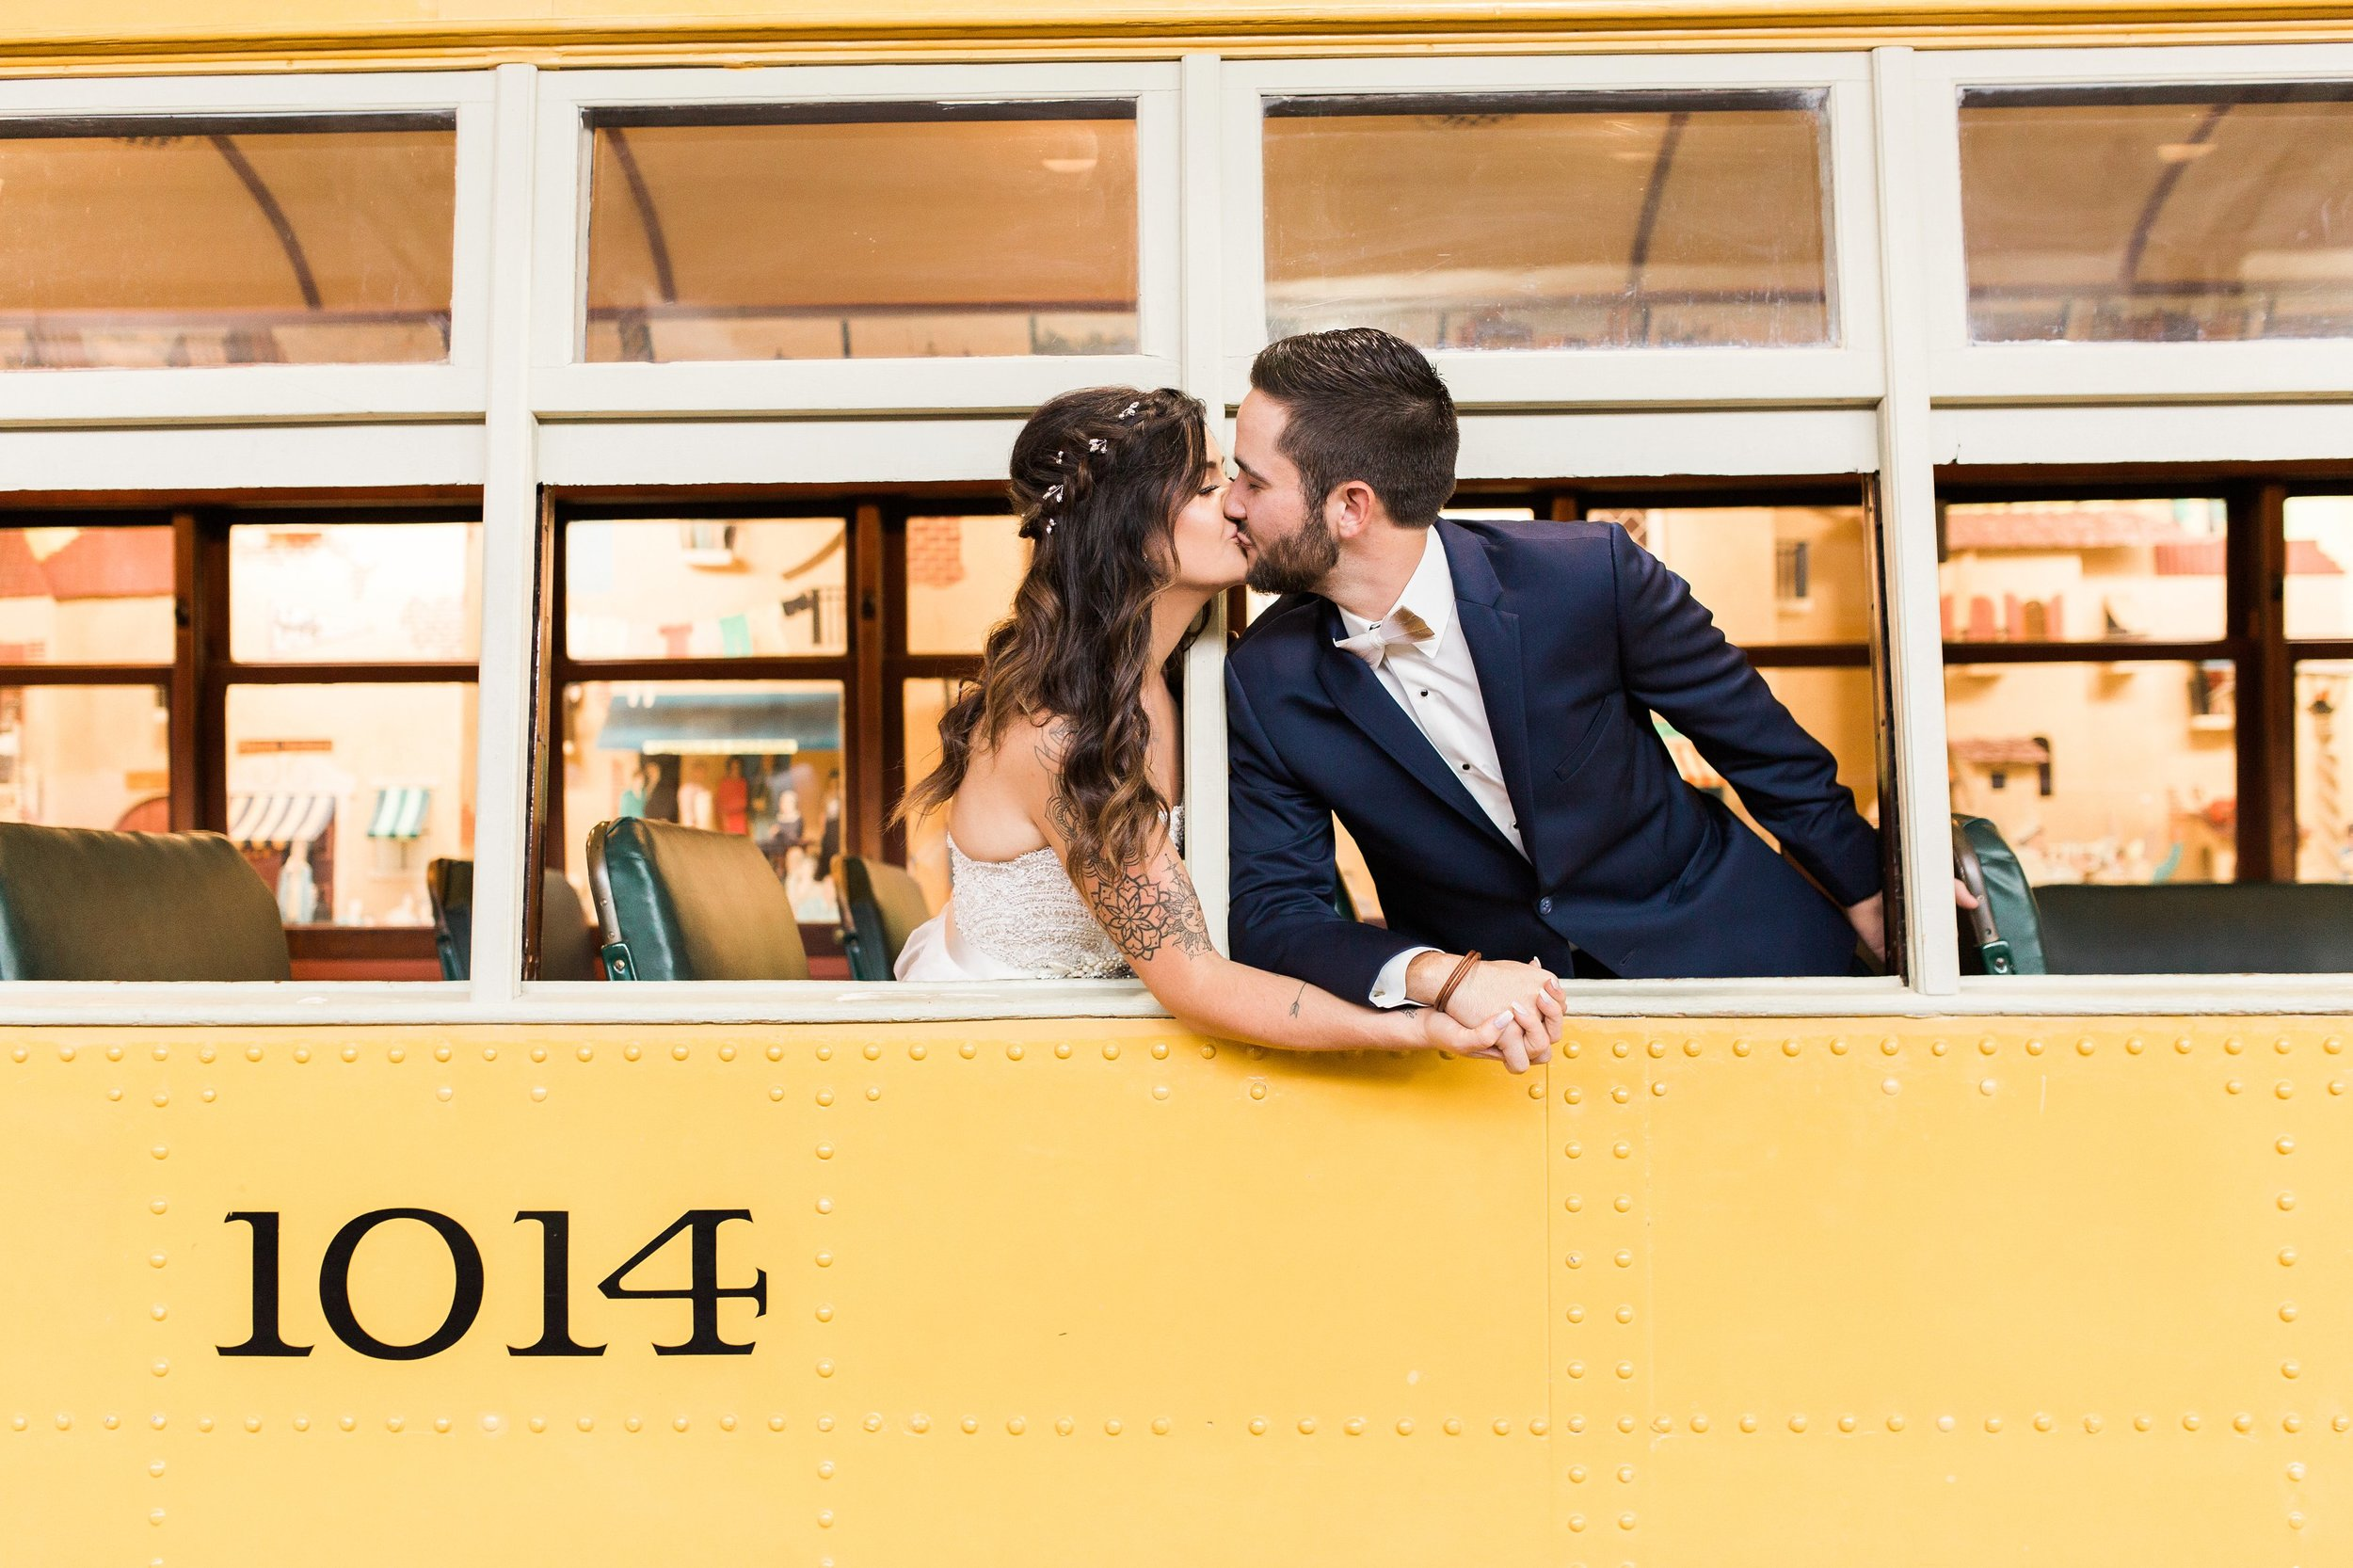 bride and groom portraits in a train-durham museum wedding-omaha nebraska-by seattle wa destination wedding photographer janelle elaine photography-2.jpg